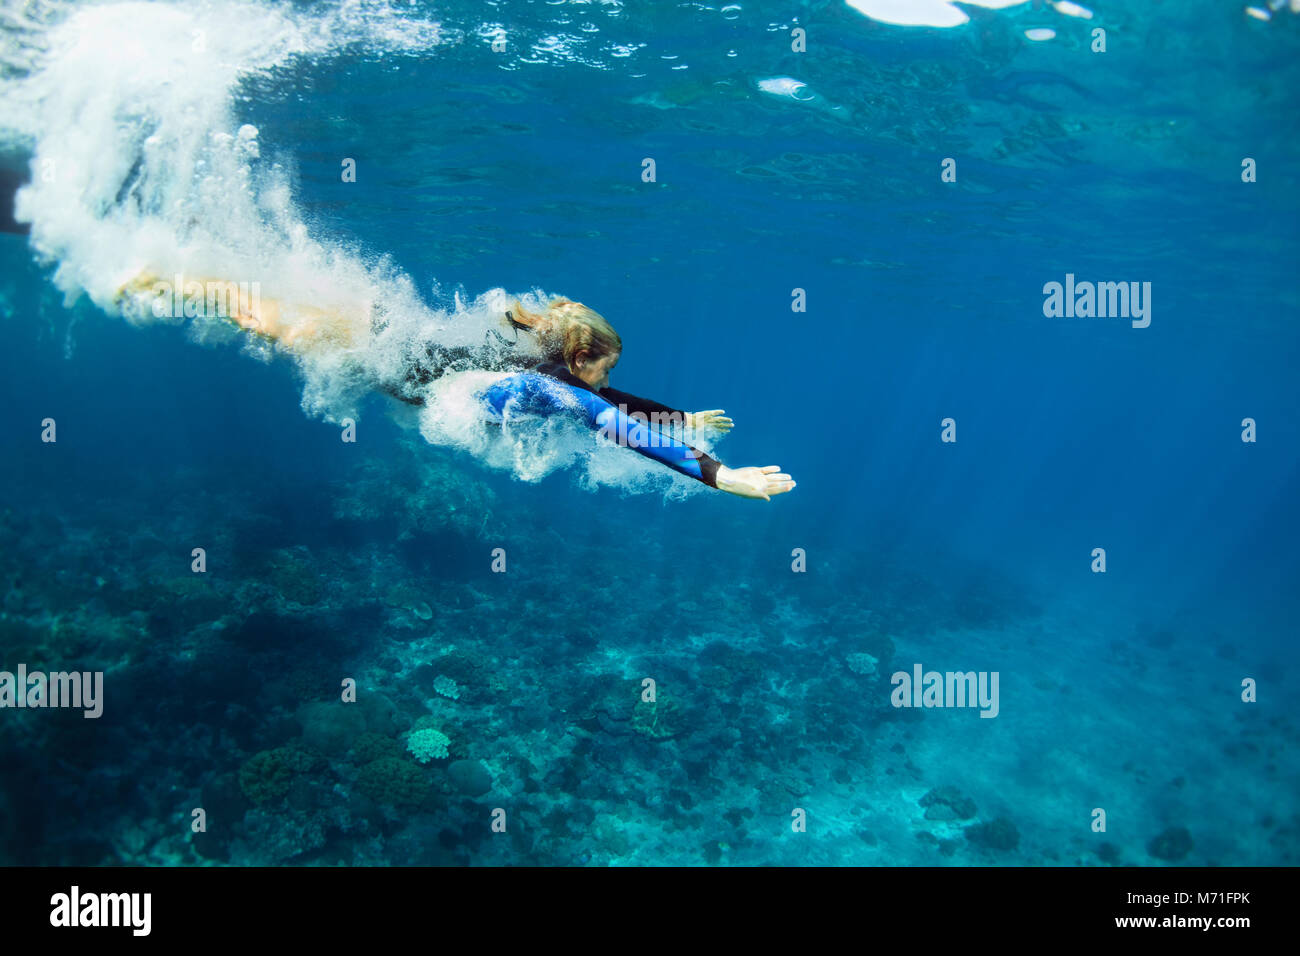 Happy family - active teenage girl jump and dive underwater in tropical coral reef pool. Travel lifestyle, water - Stock Image